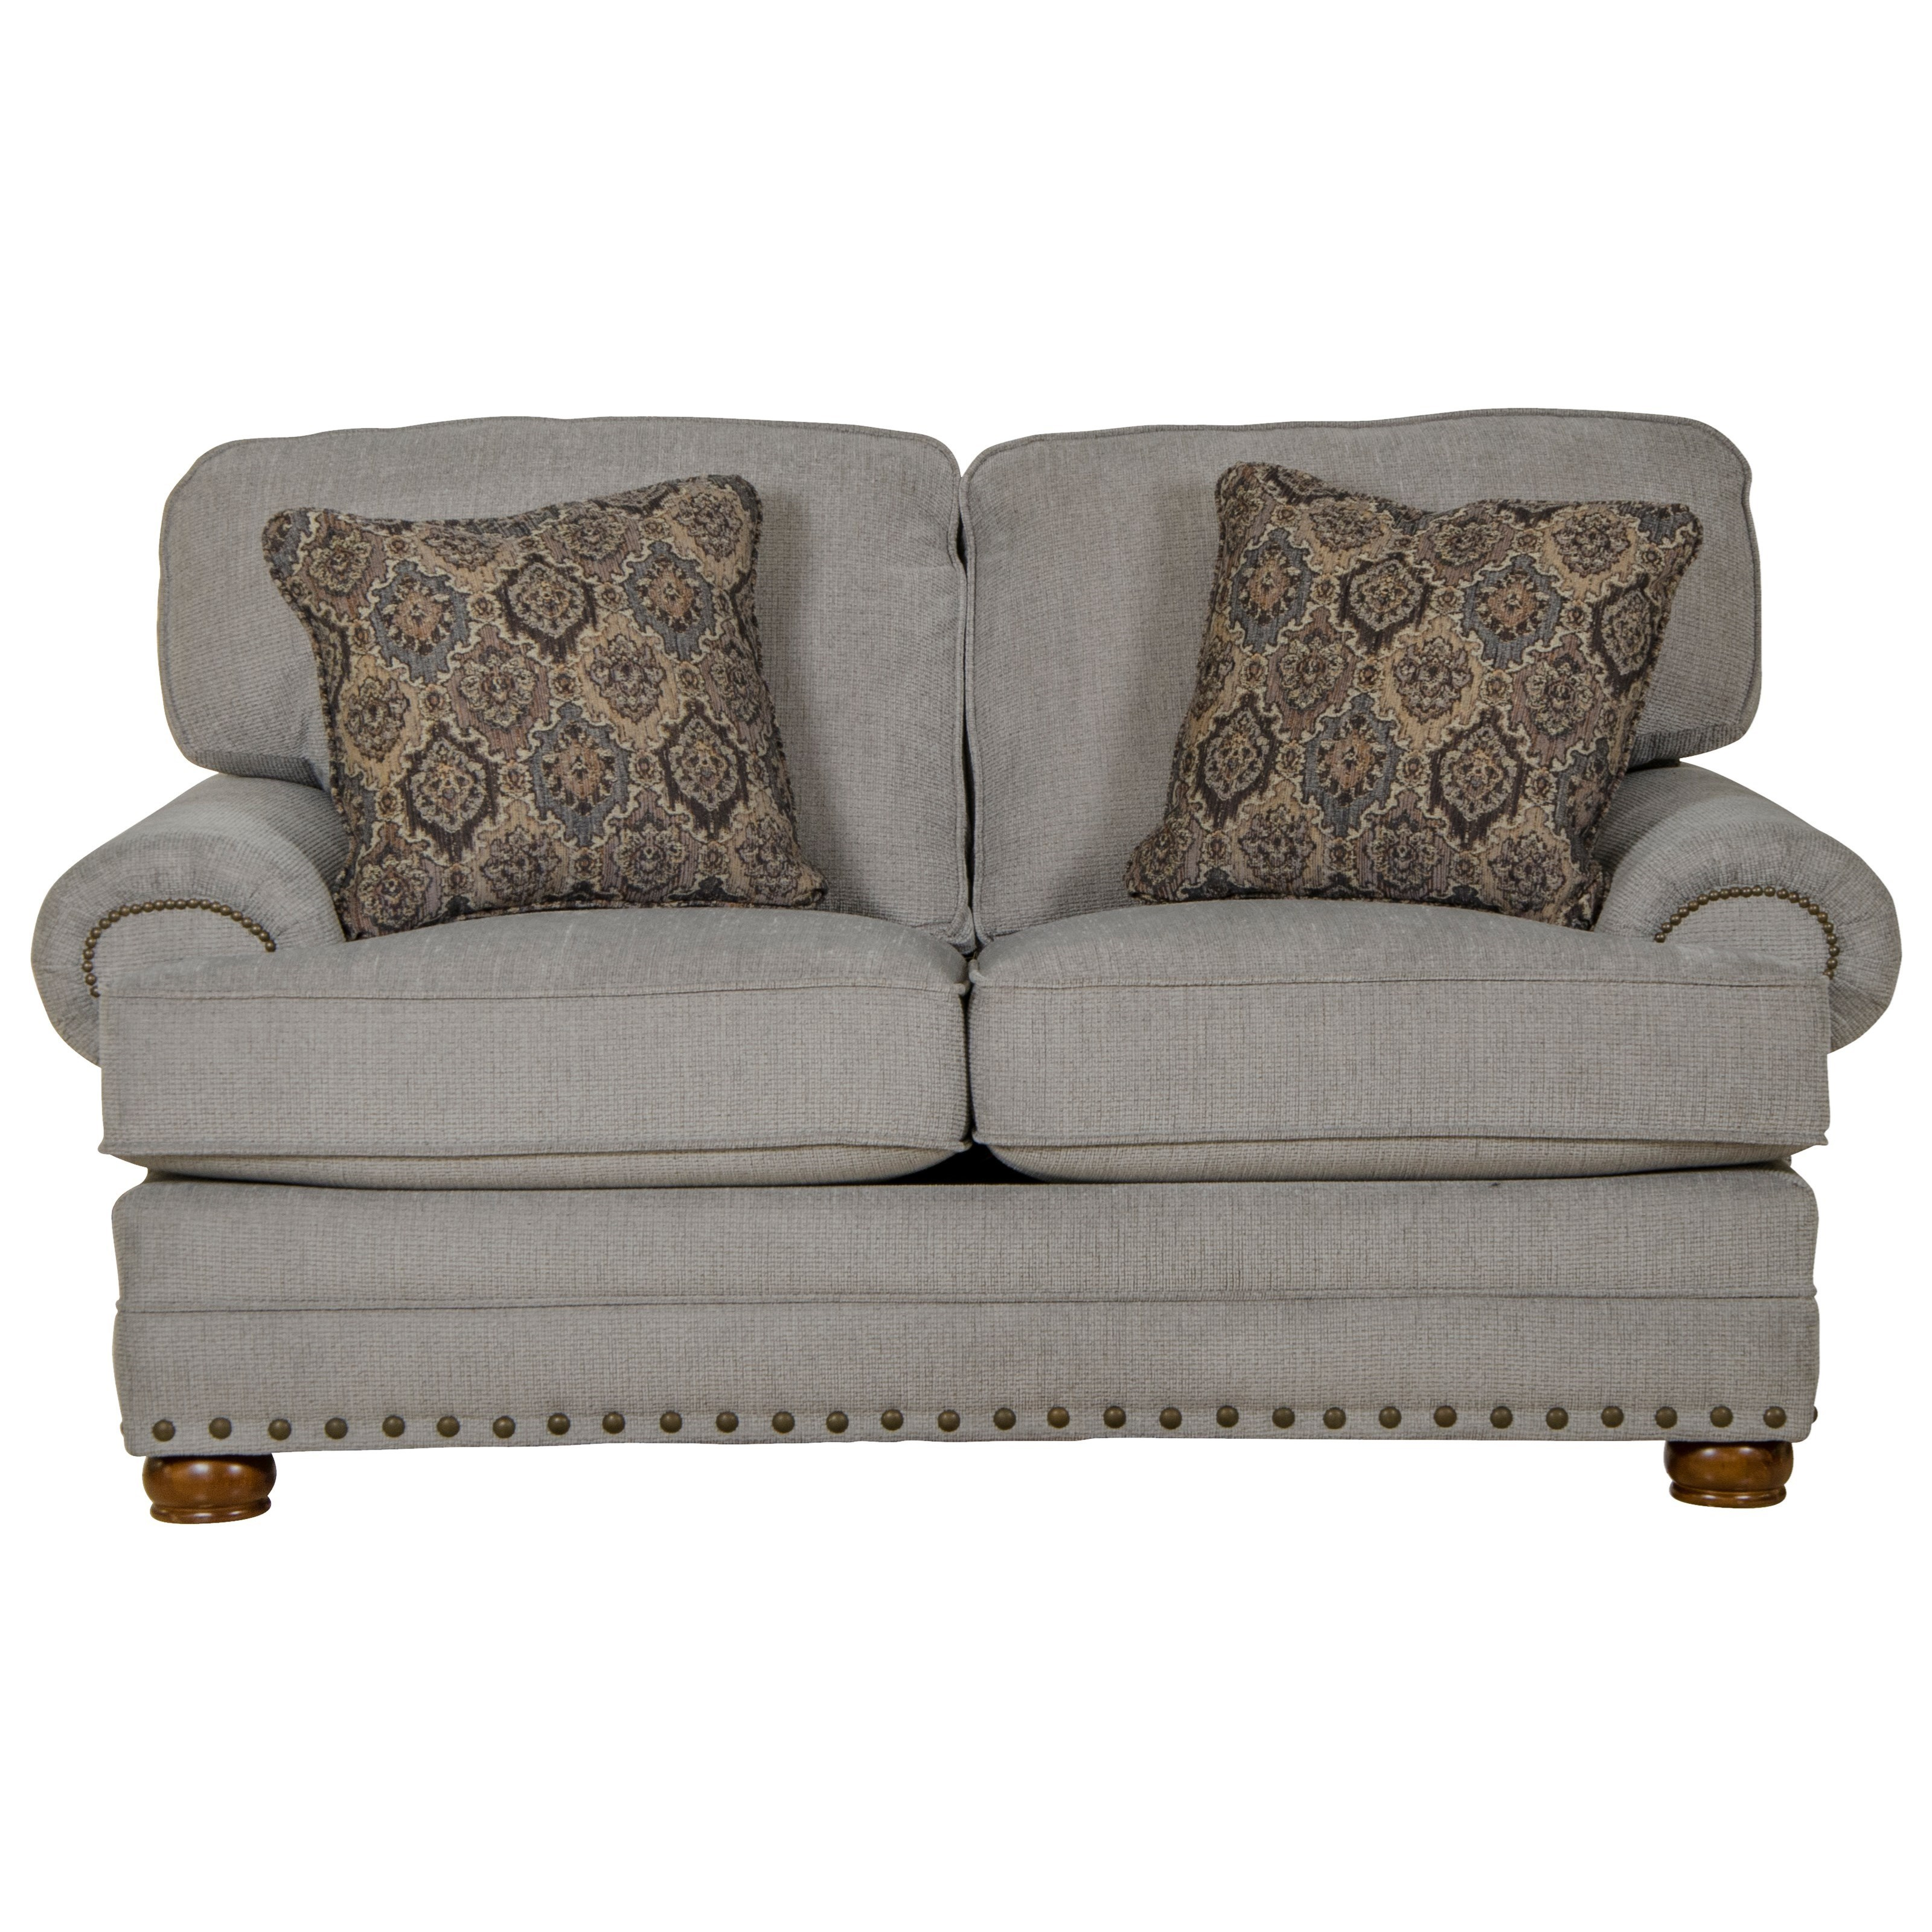 Singletary Loveseat by Jackson Furniture at Northeast Factory Direct